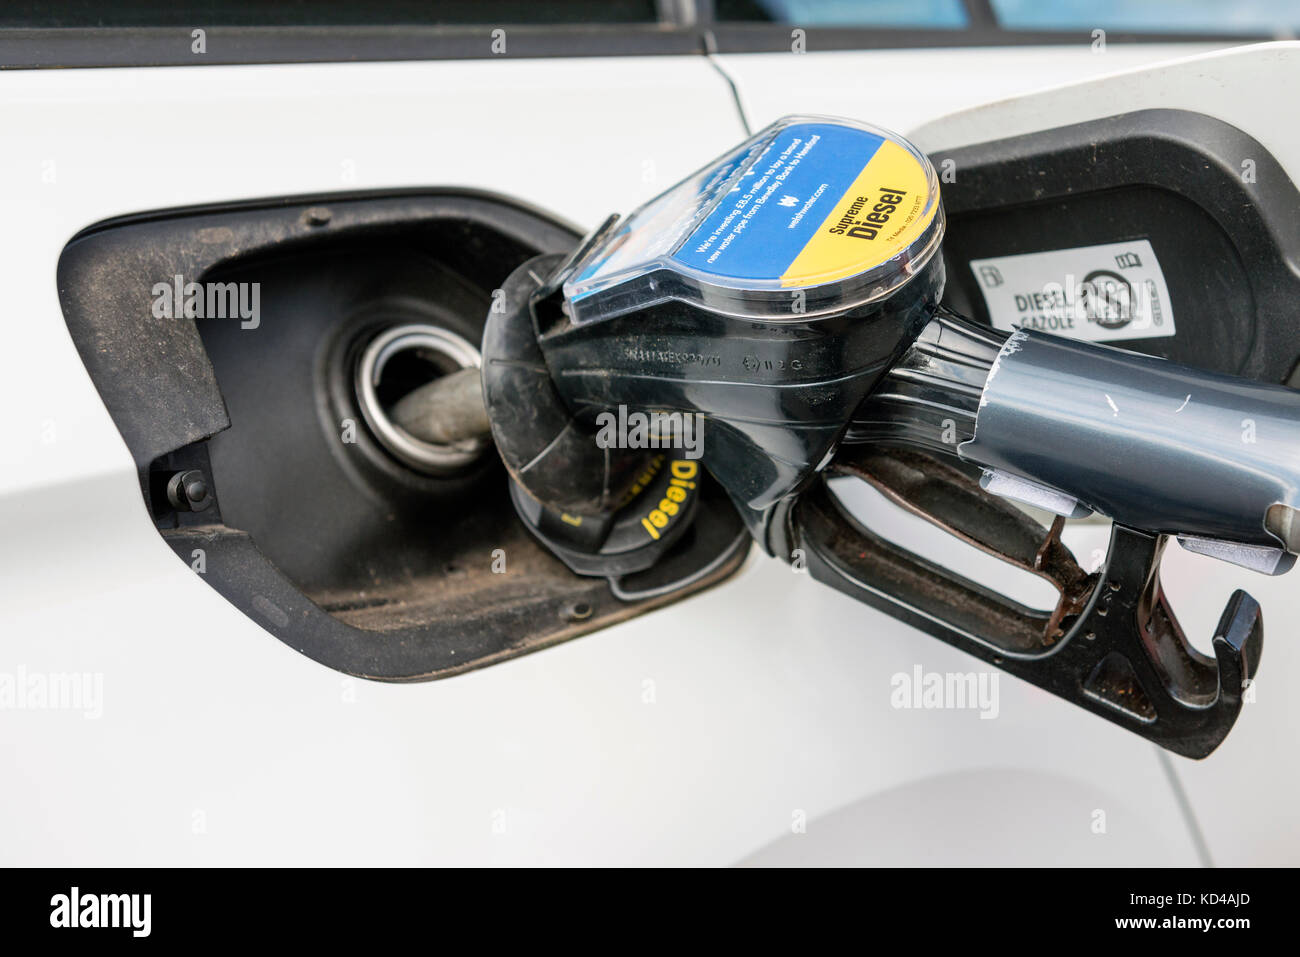 Car filling up with diesel fuel at a pump, UK. - Stock Image